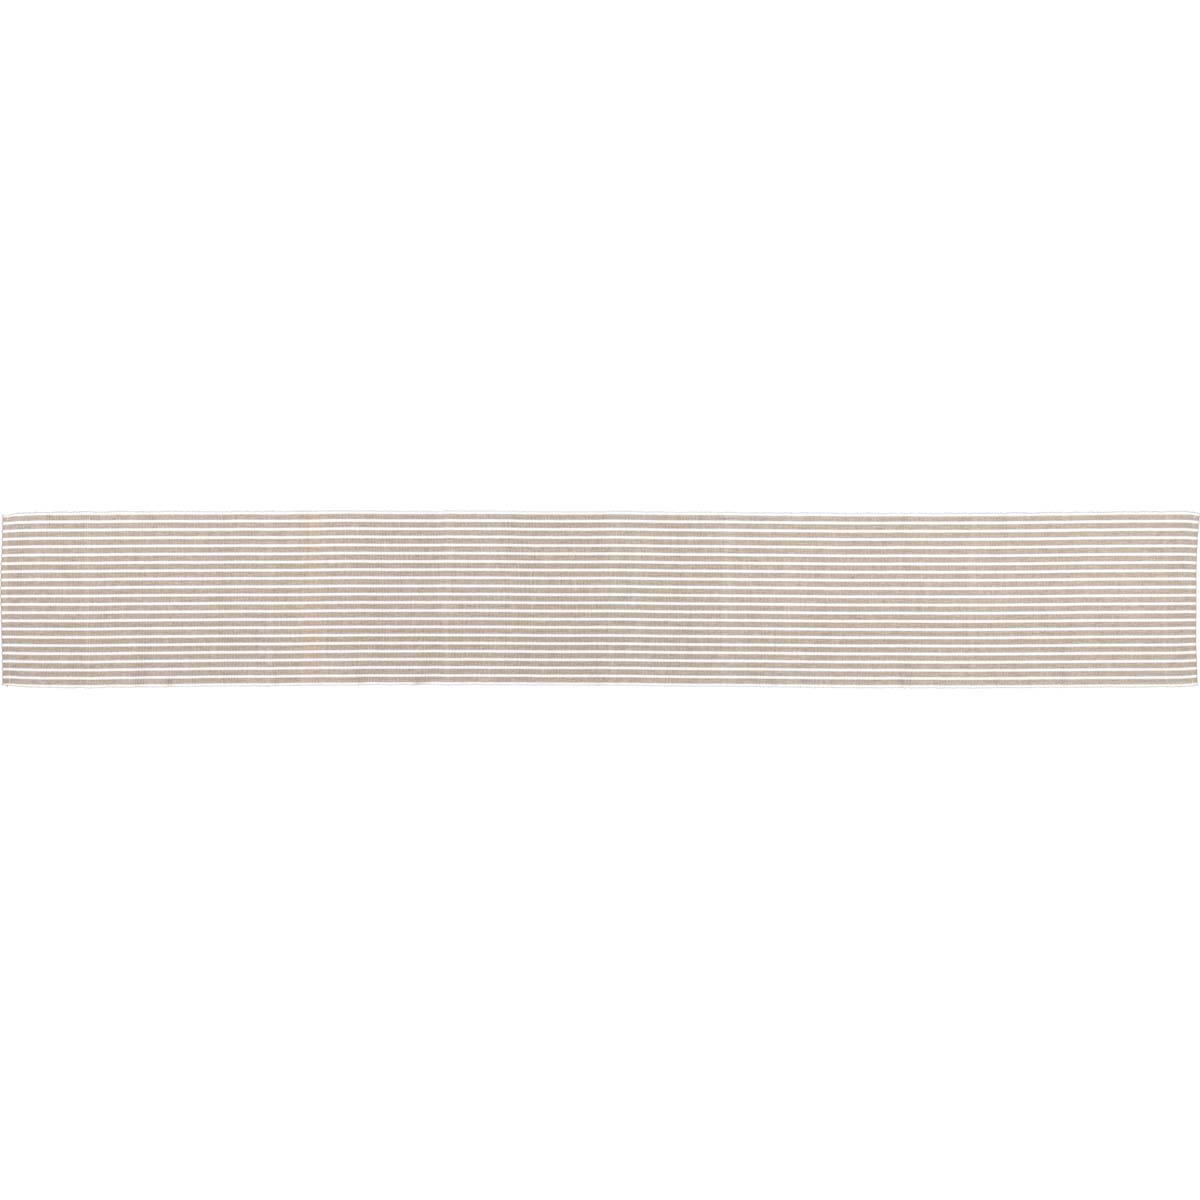 Harmony Taupe Ribbed Runner 13x72